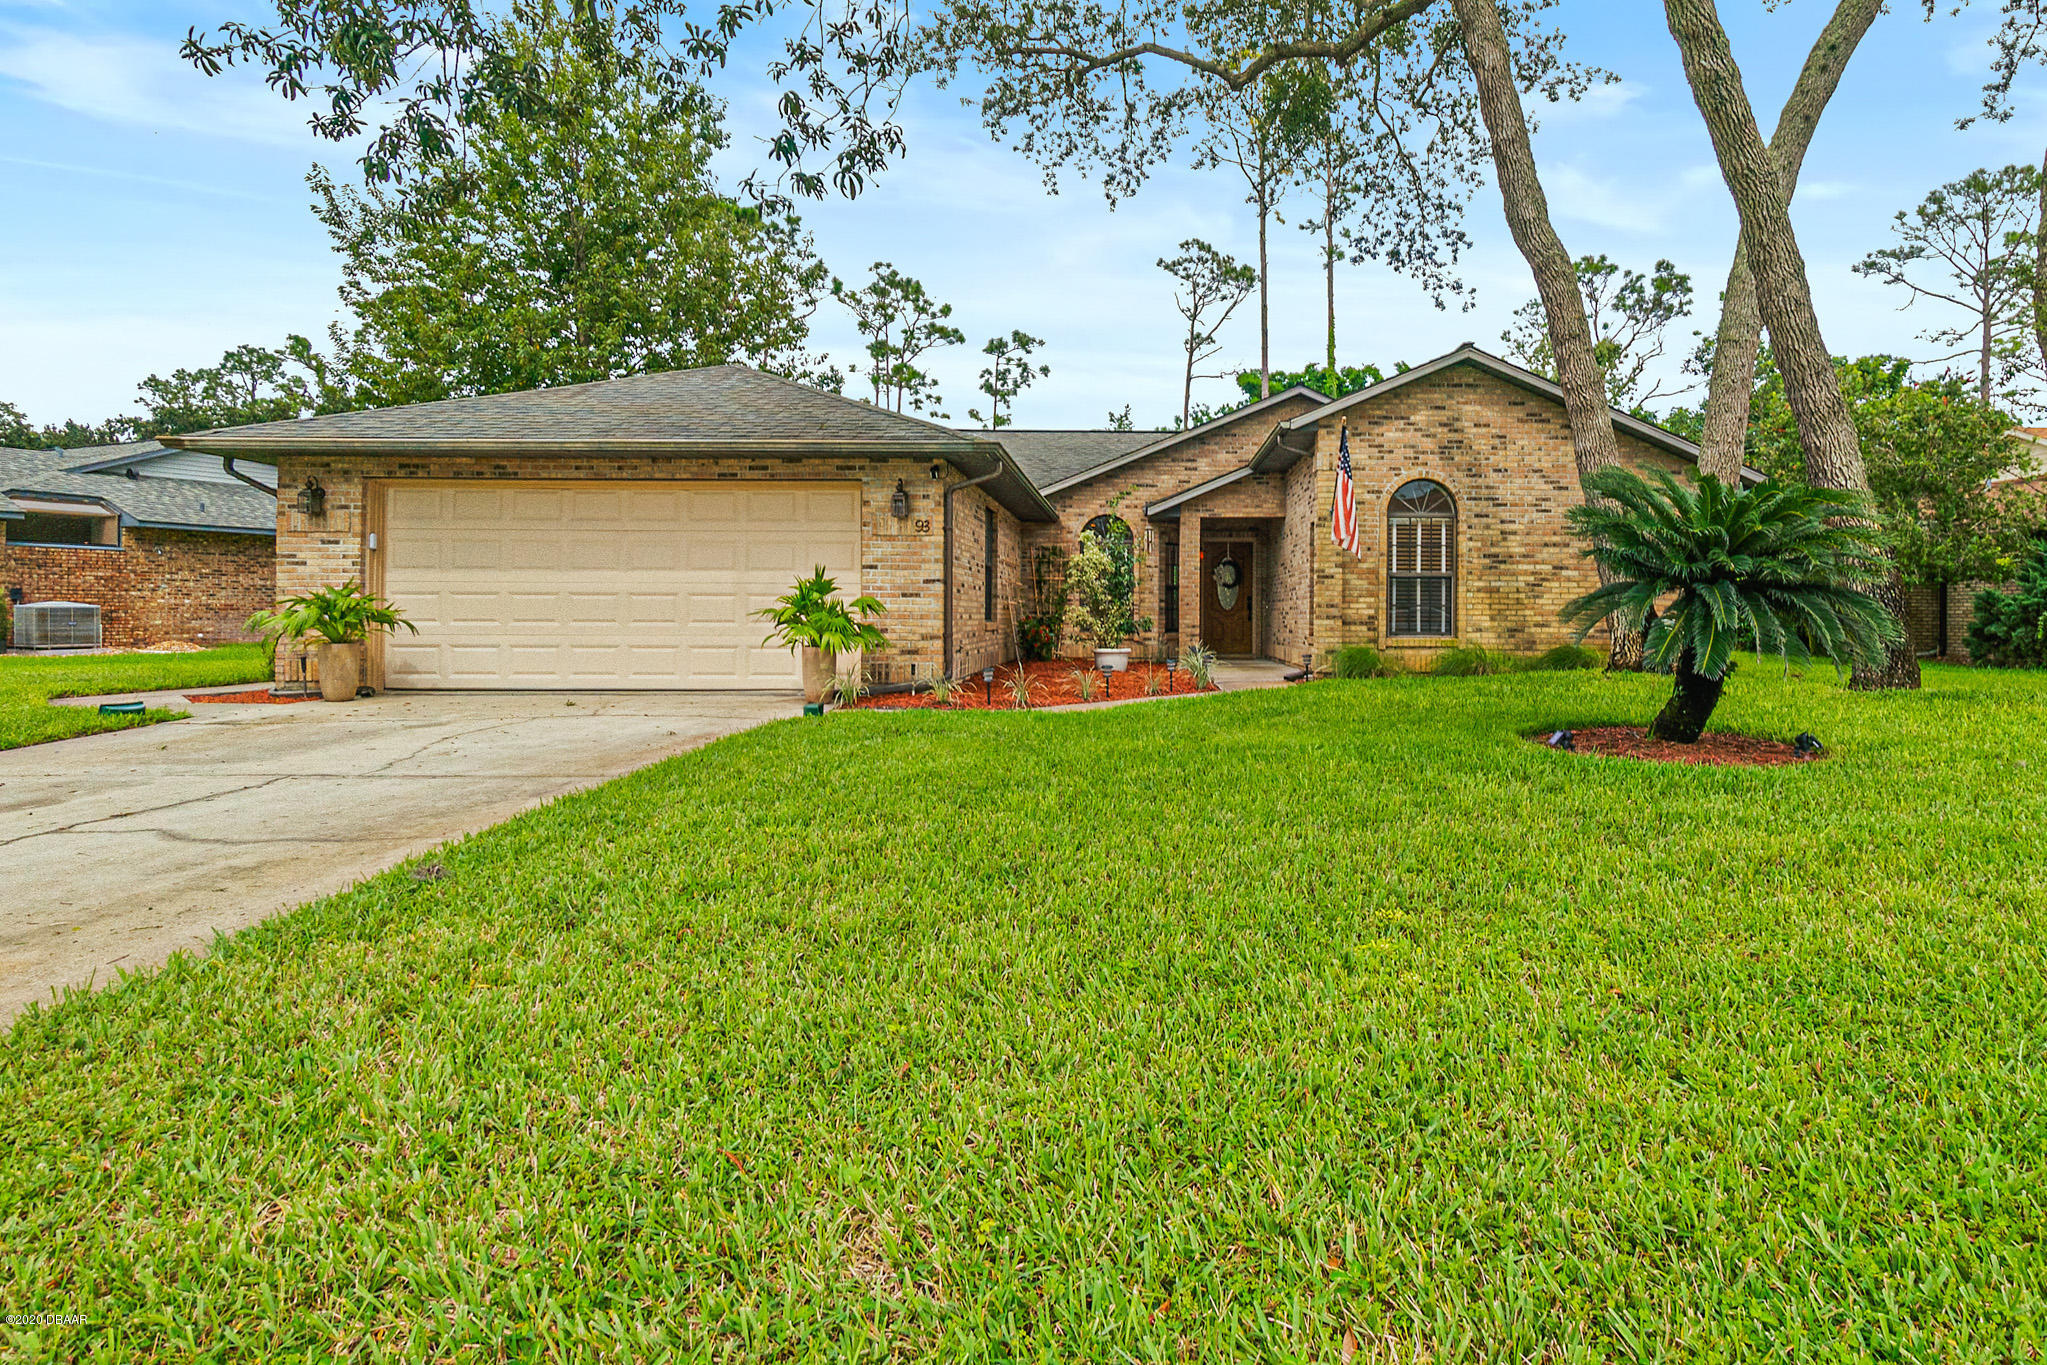 Details for 93 Carriage Creek Way, Ormond Beach, FL 32174